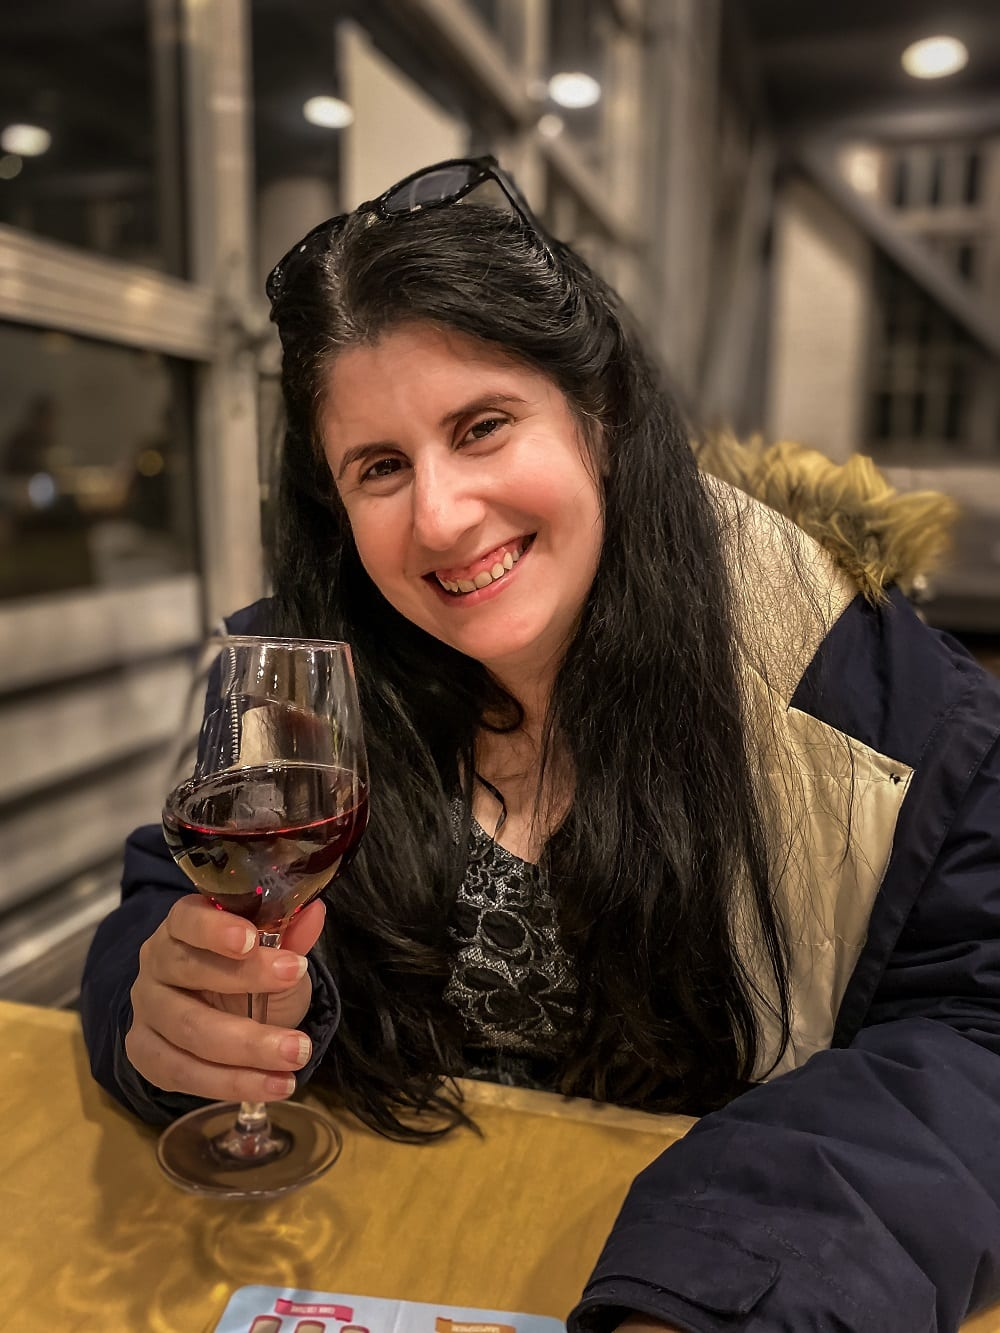 Anisa smiling and enjoying the wine at the Brooklyn West Winery